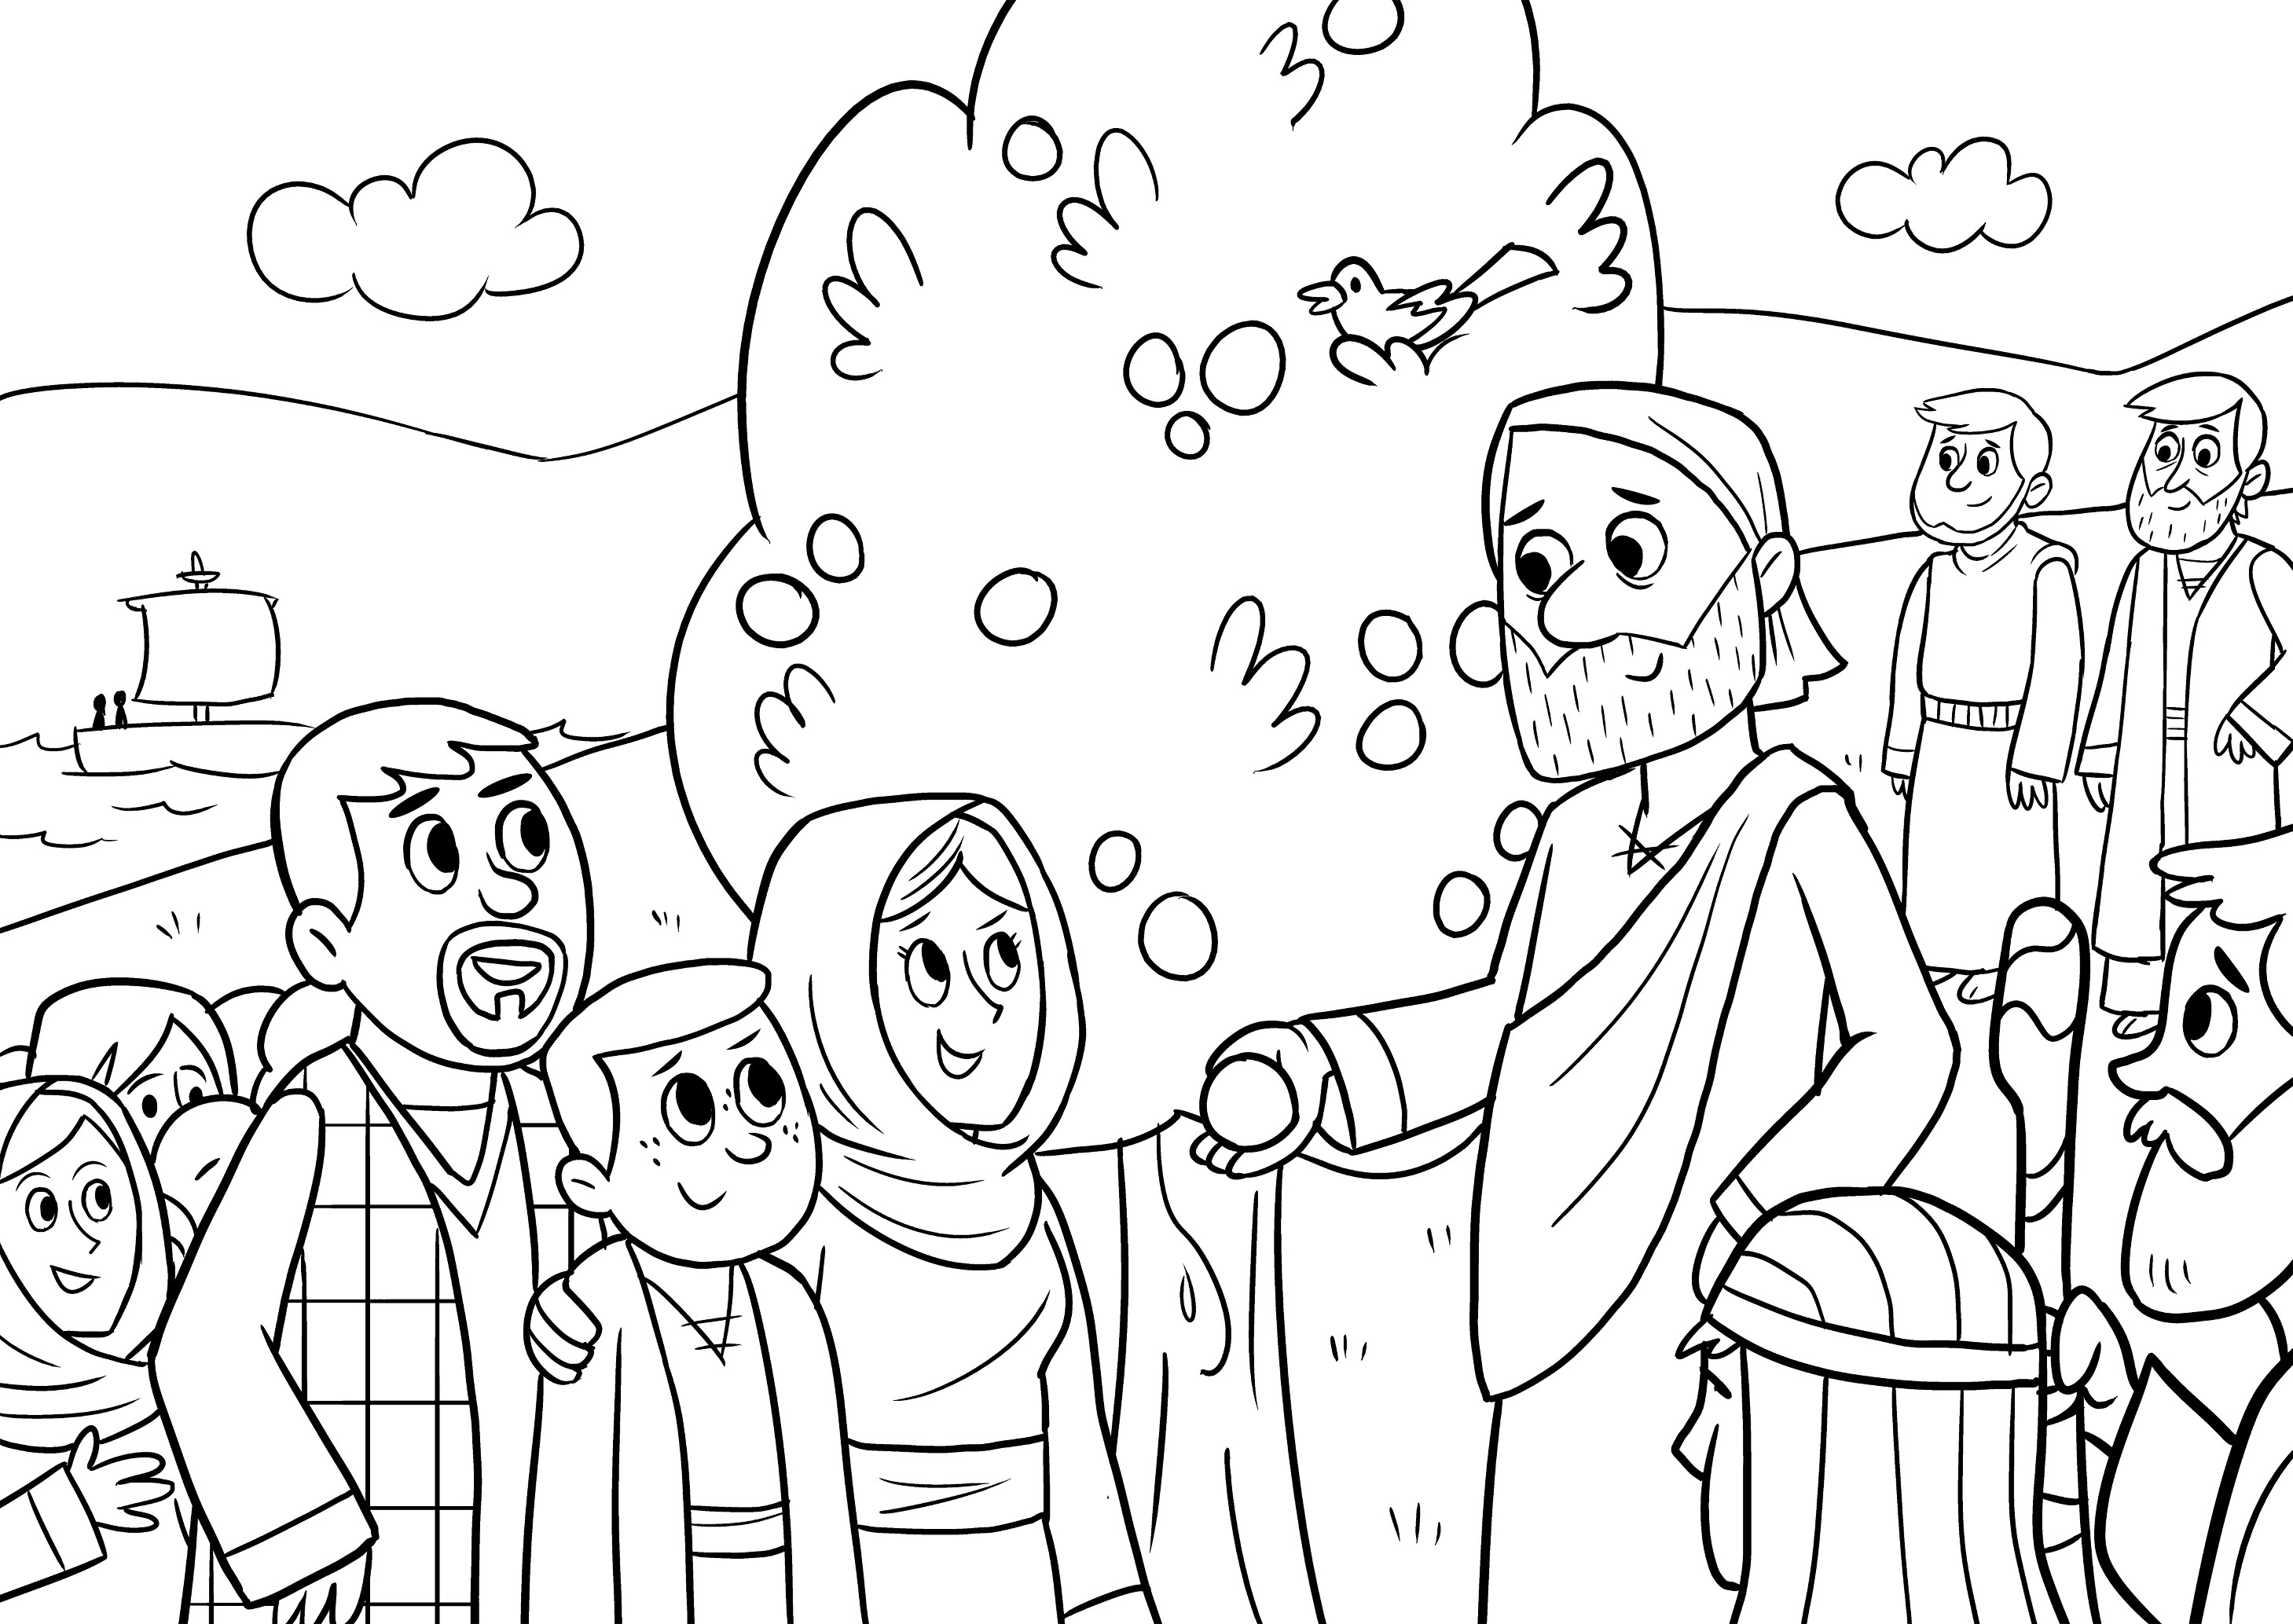 the sermon on the mount bible app for kids story the king and